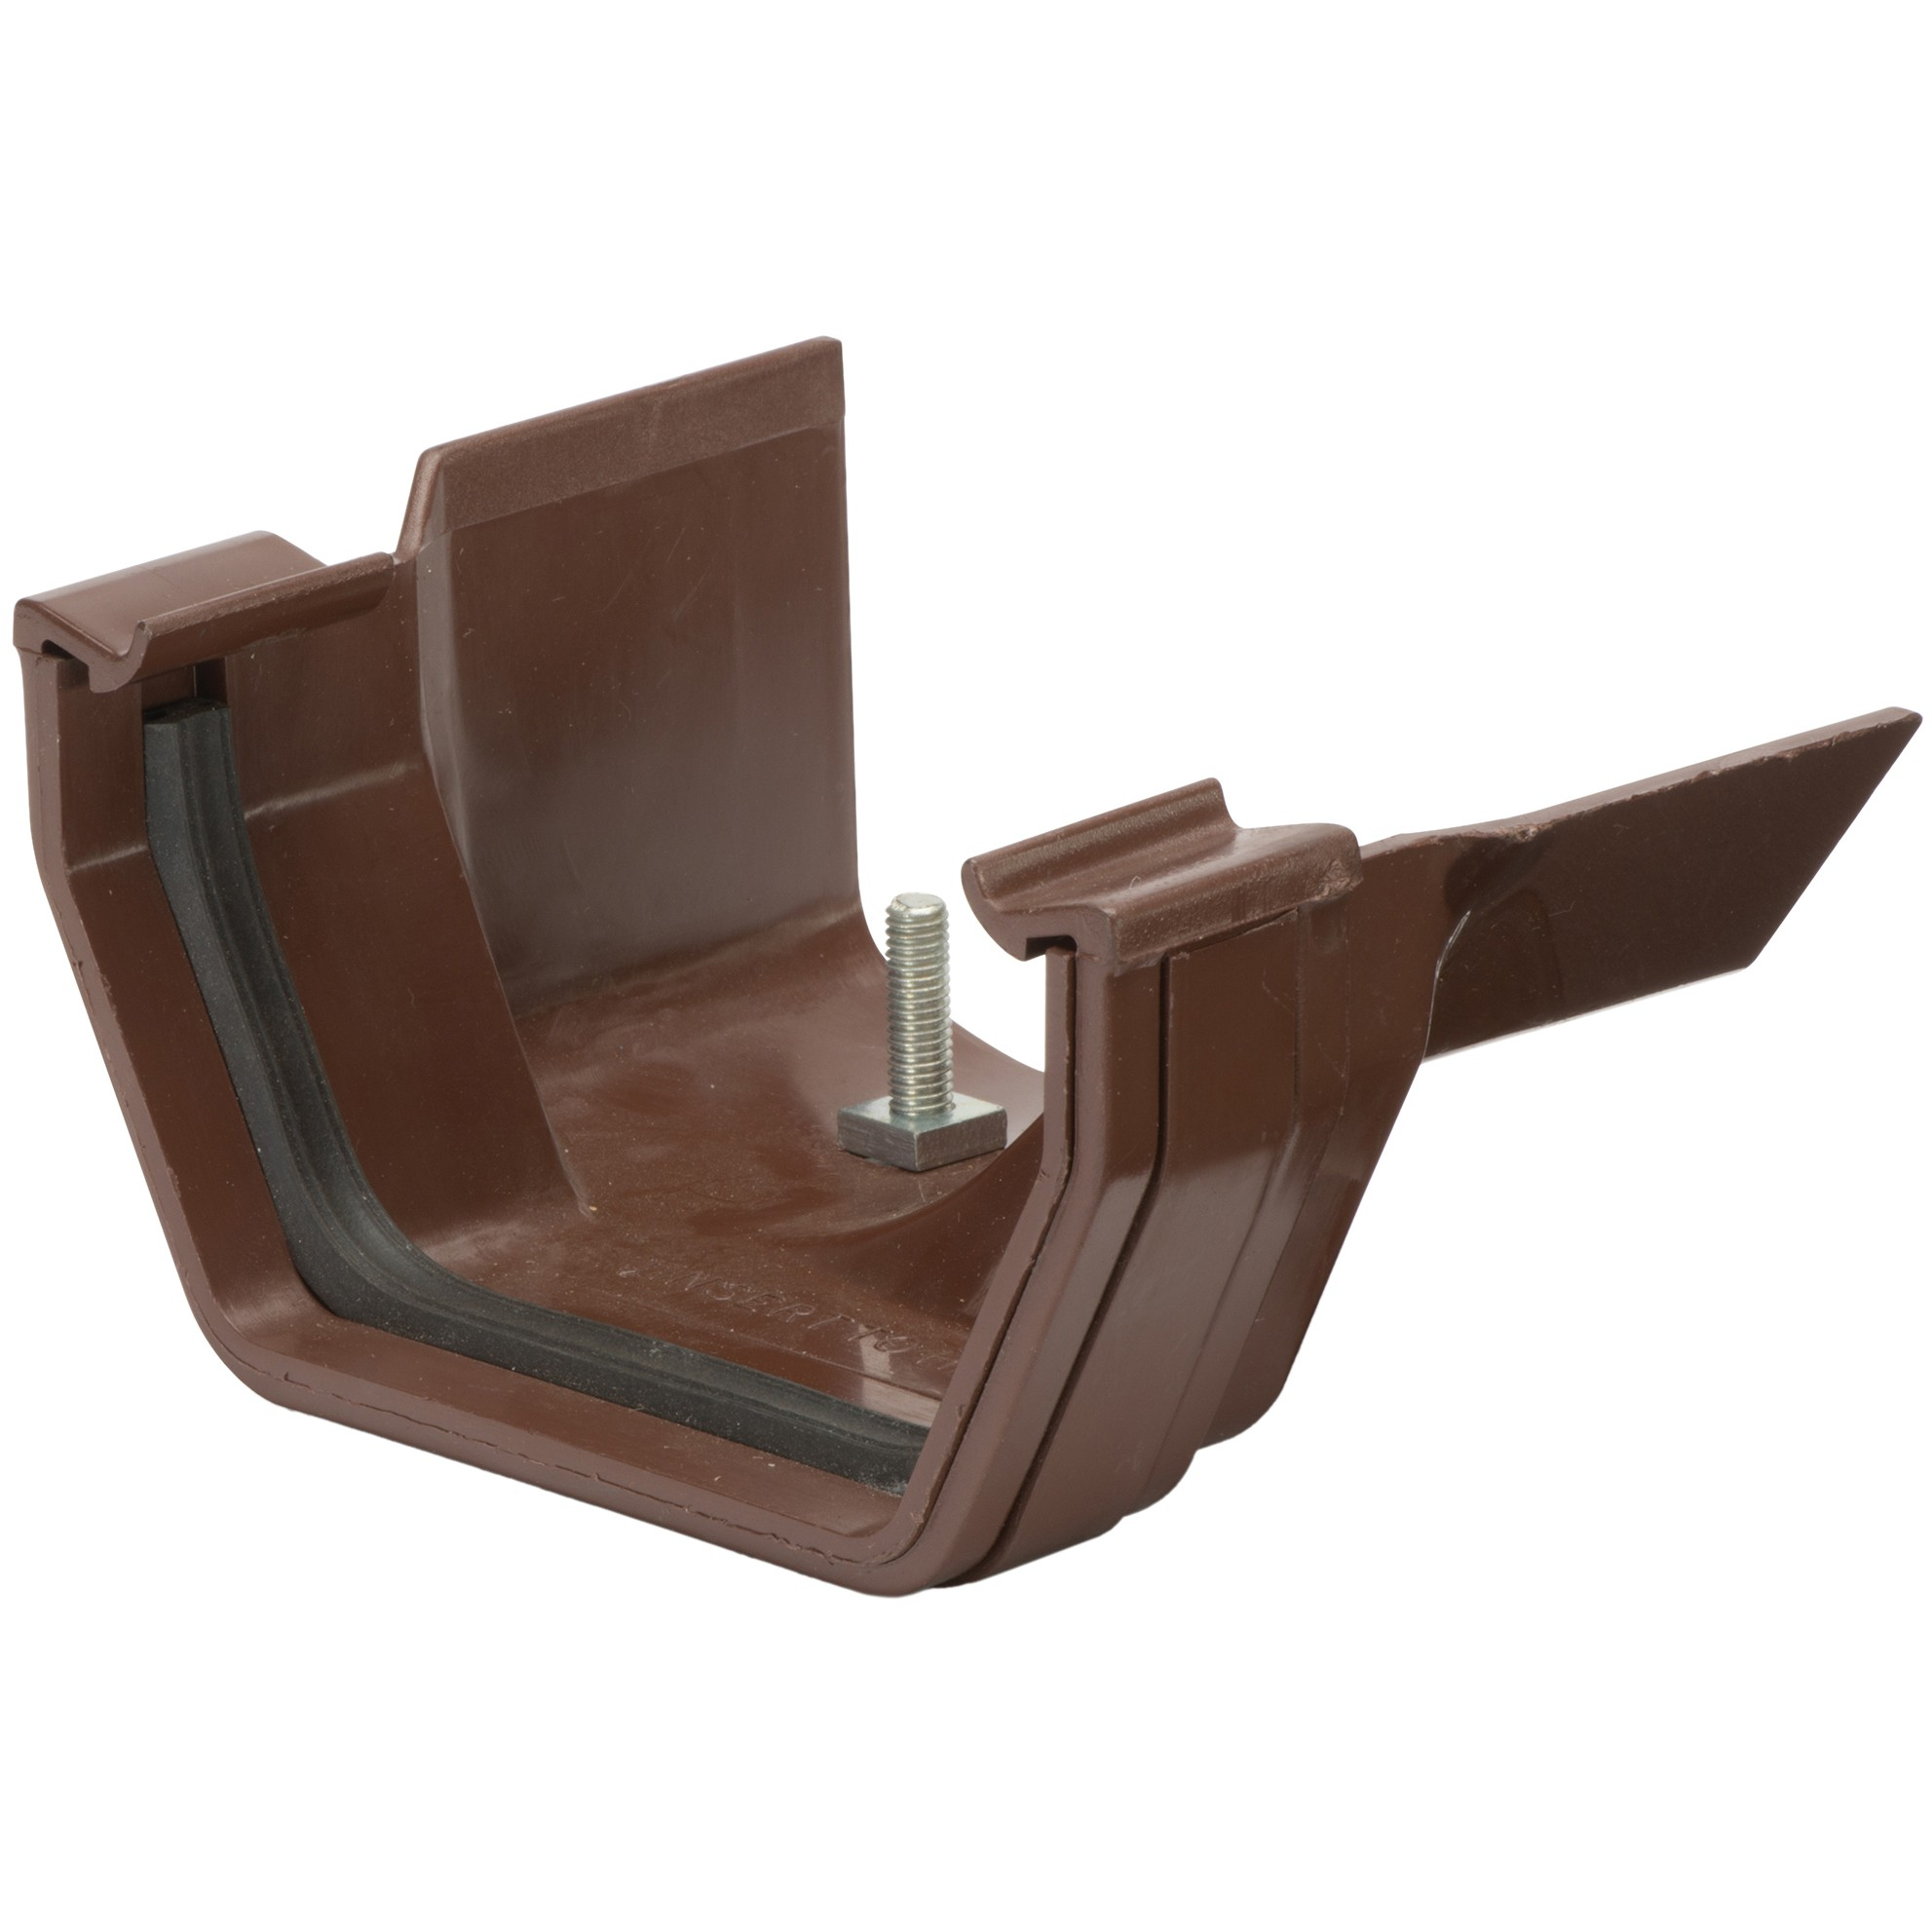 Polypipe 112mm Square to 130mm Metal Ogee Gutter Adaptor (Right Hand) - Brown